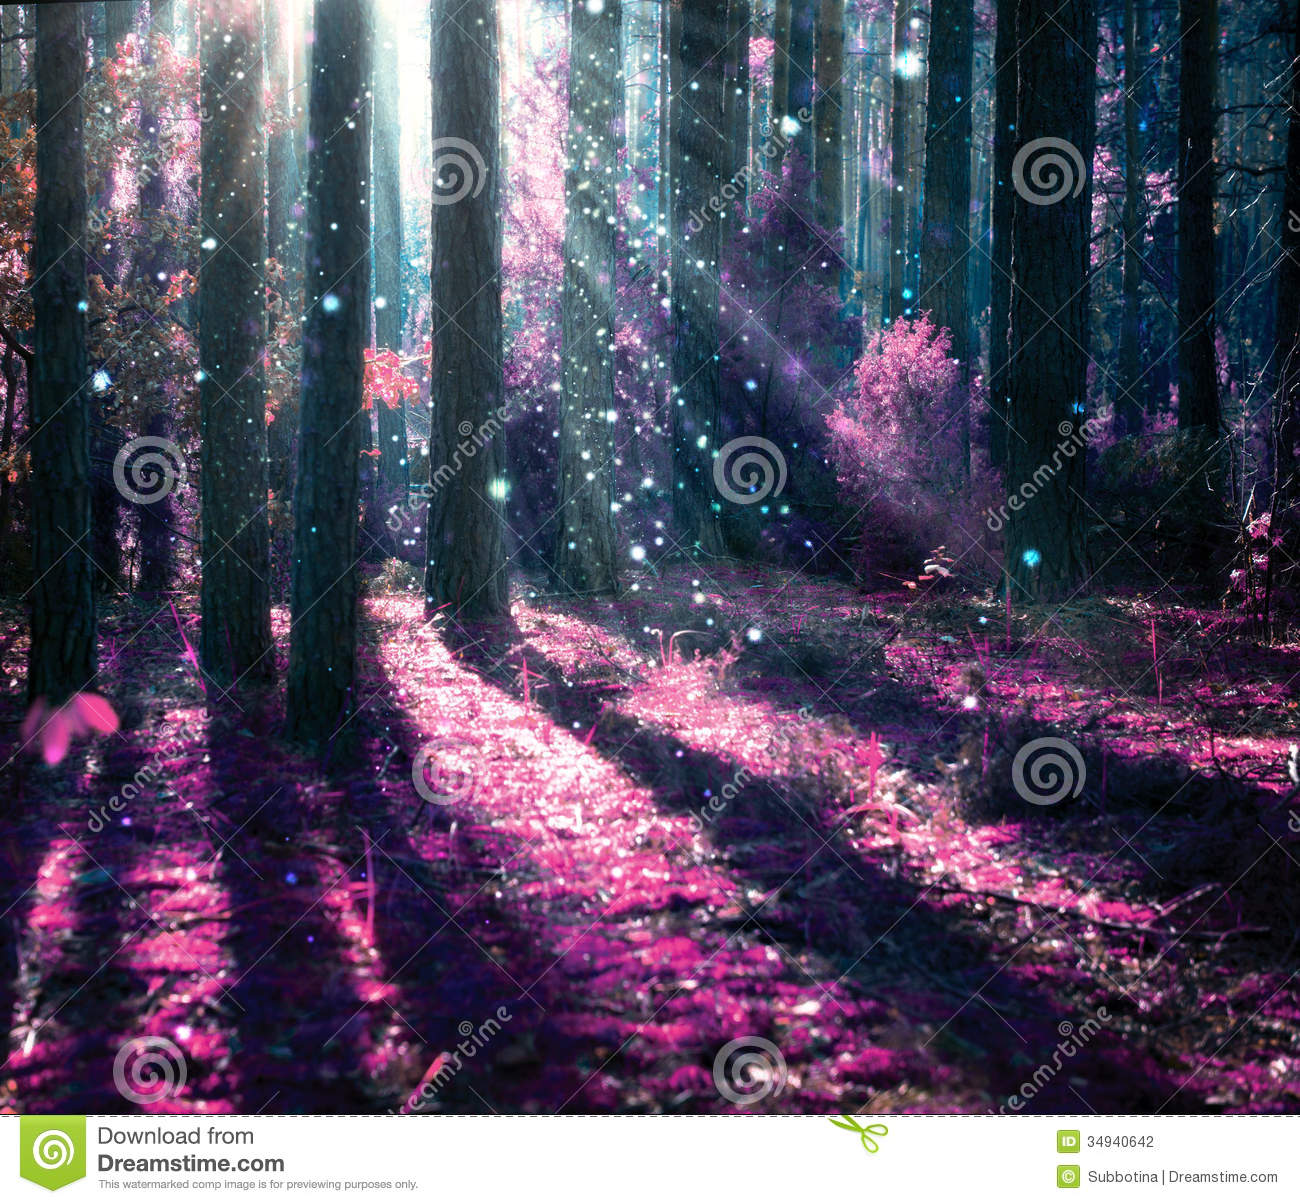 Purple Fall Wallpaper Mysterious Old Forest Stock Photography Image 34940642